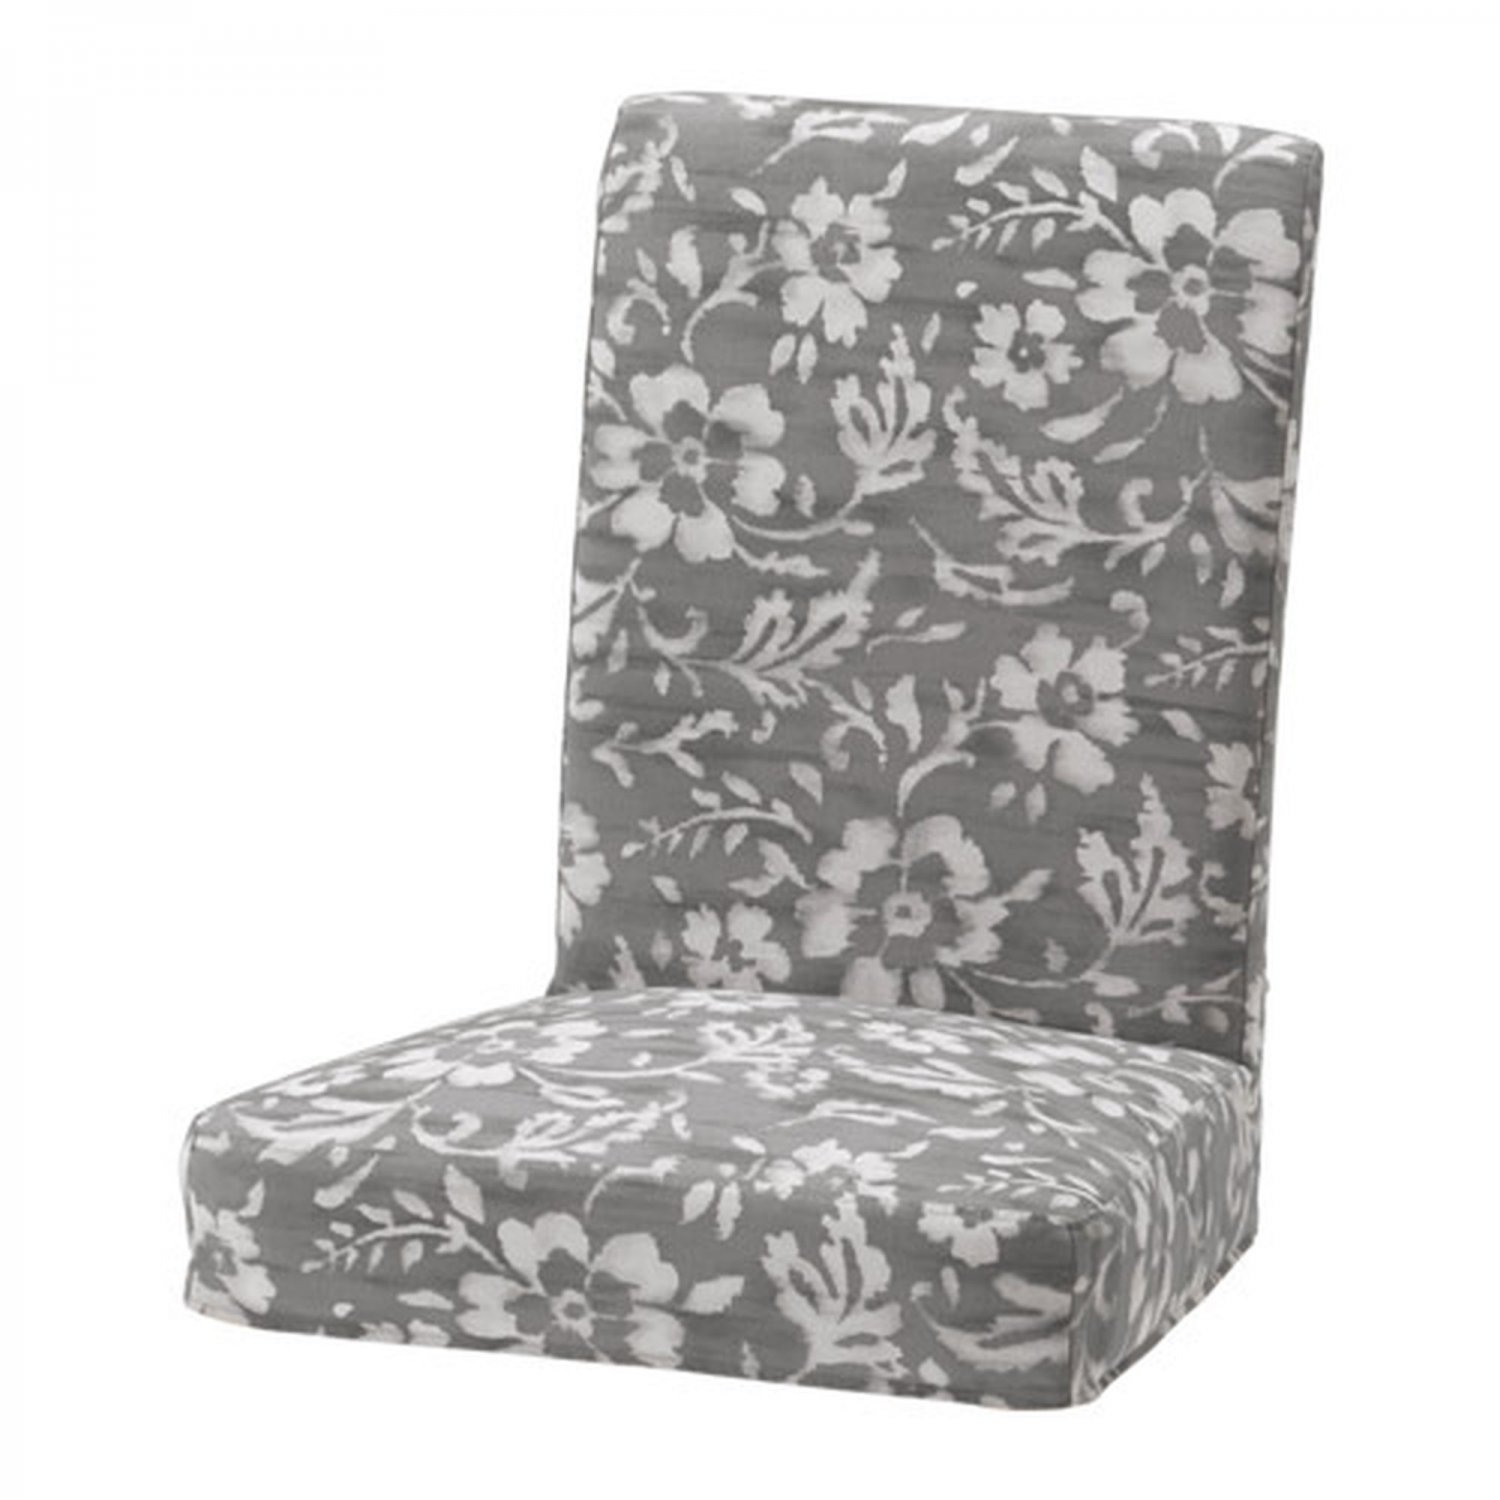 "IKEA HENRIKSDAL Chair SLIPCOVER Cover 21"" 54cm HOVSTEN Gray Floral Blurred Lines"